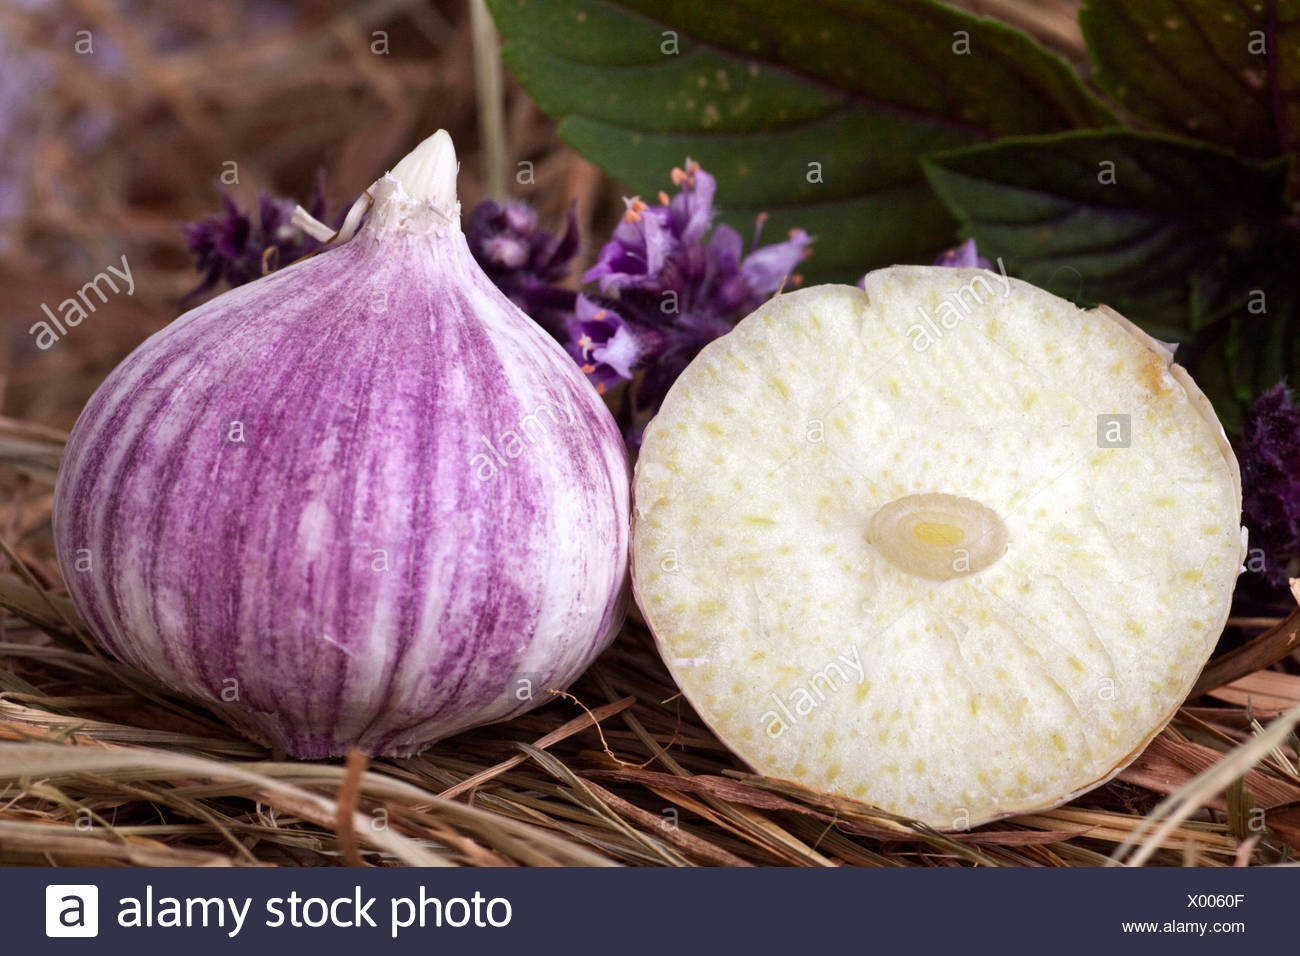 Elephant Garlic (Allium ampeloprasum), garlic variety - Stock Image